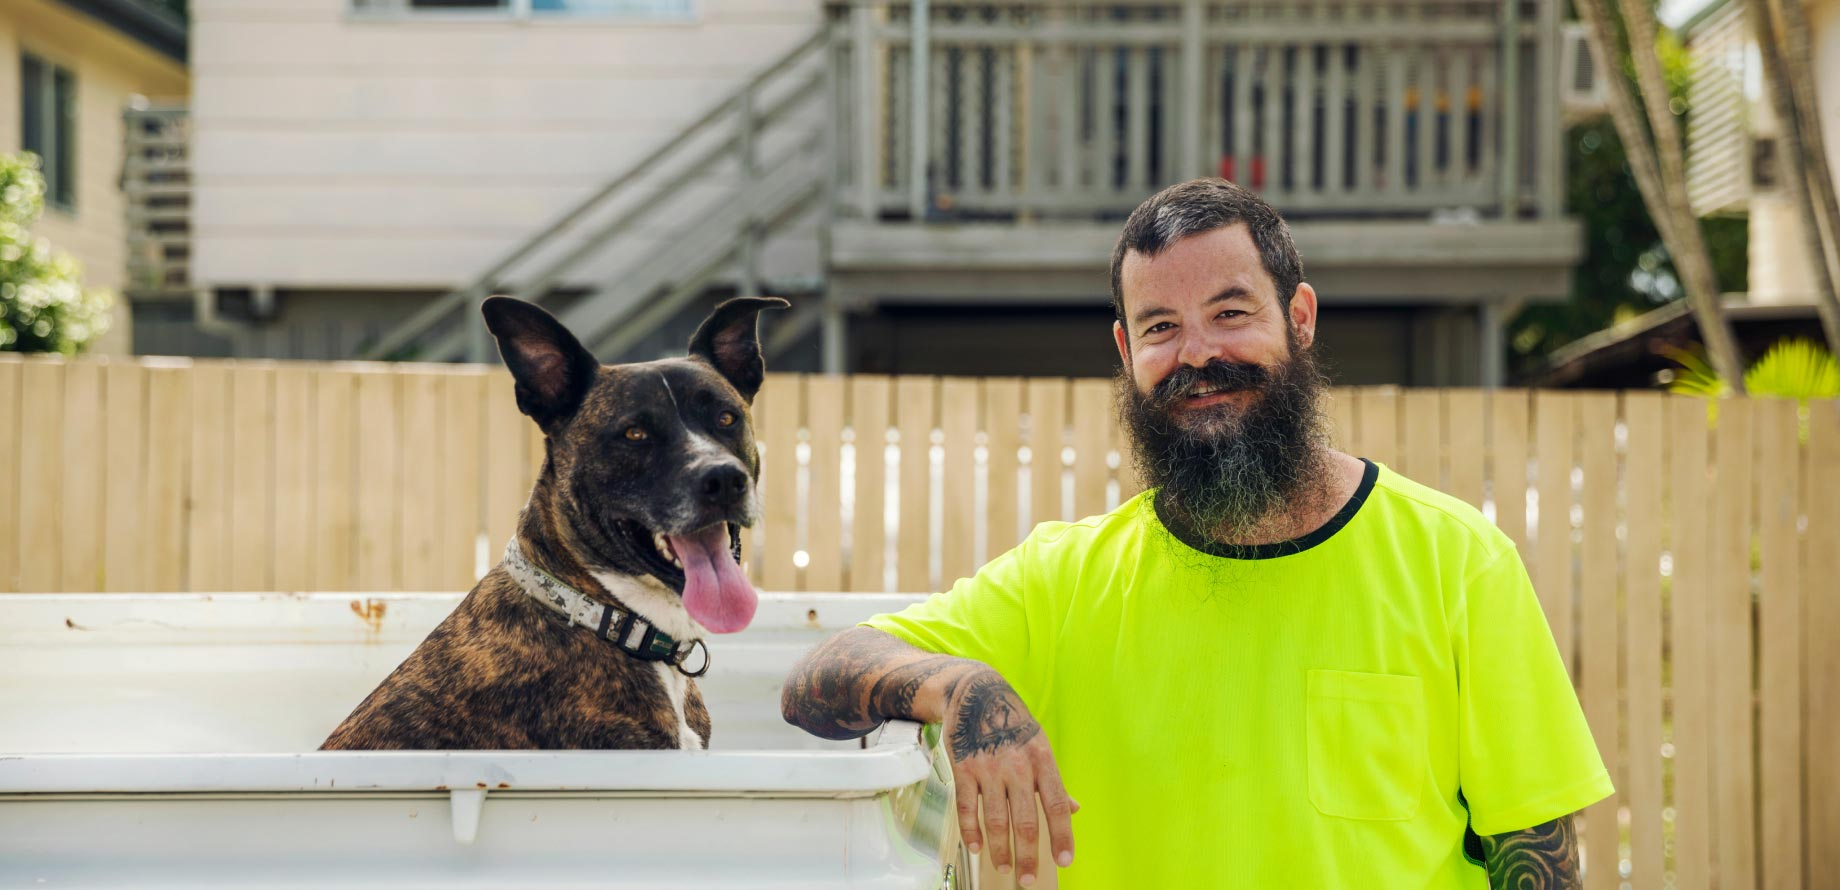 A male tradesperson standing next to his dog thats sitting in his ute